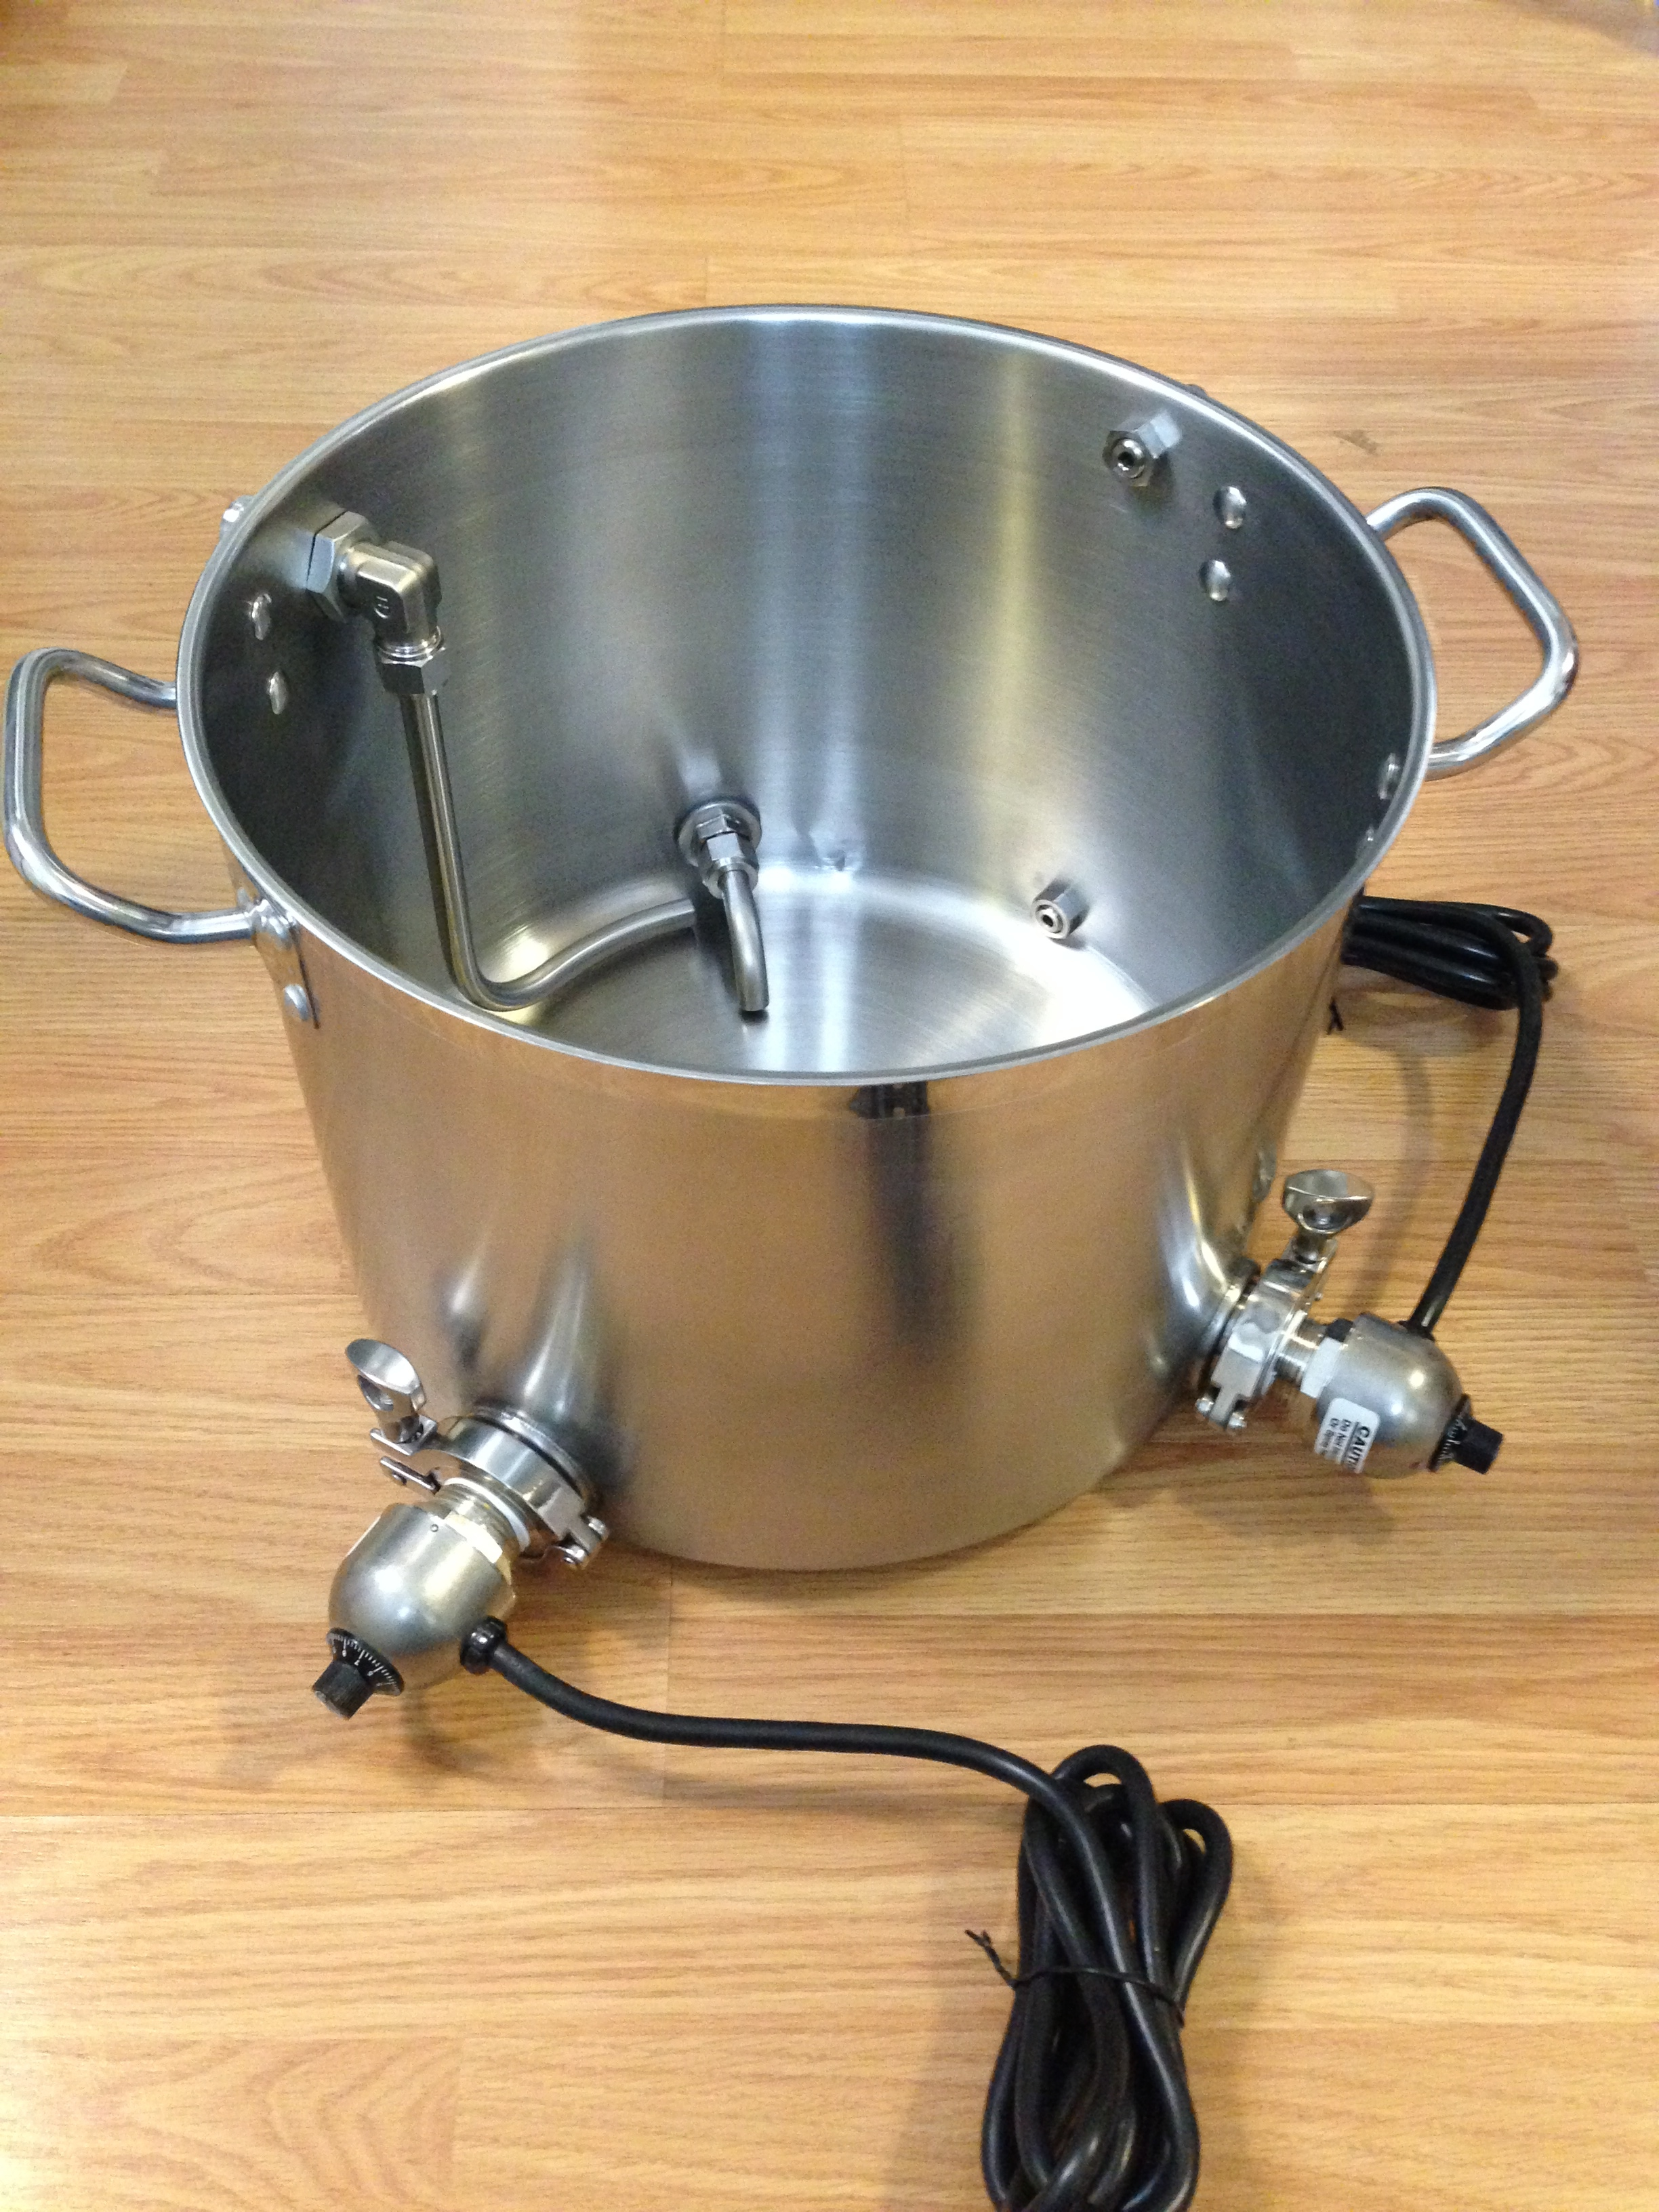 Home Brewing Small Space Brewer Page 3 Wire 240v Electric Brew Pot Controller Forums One Other Thing I Wanted To Redesign Was My Wort Cooling Method Have Been Using An Immersion Chiller And It Has Done A Pretty Good Job But With Heating